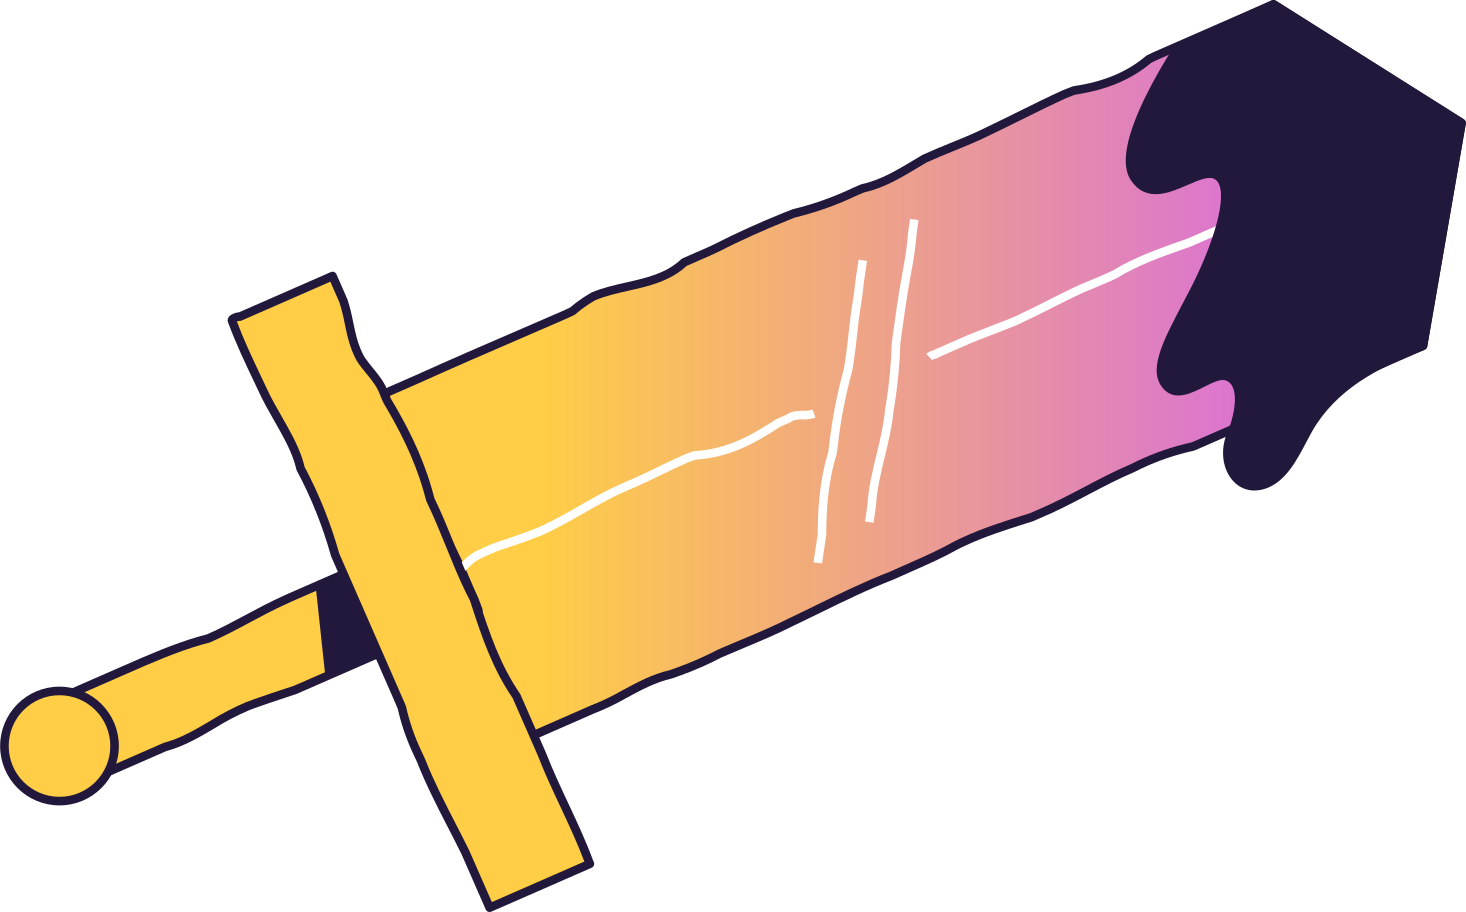 style sword Vector images in PNG and SVG   Icons8 Illustrations